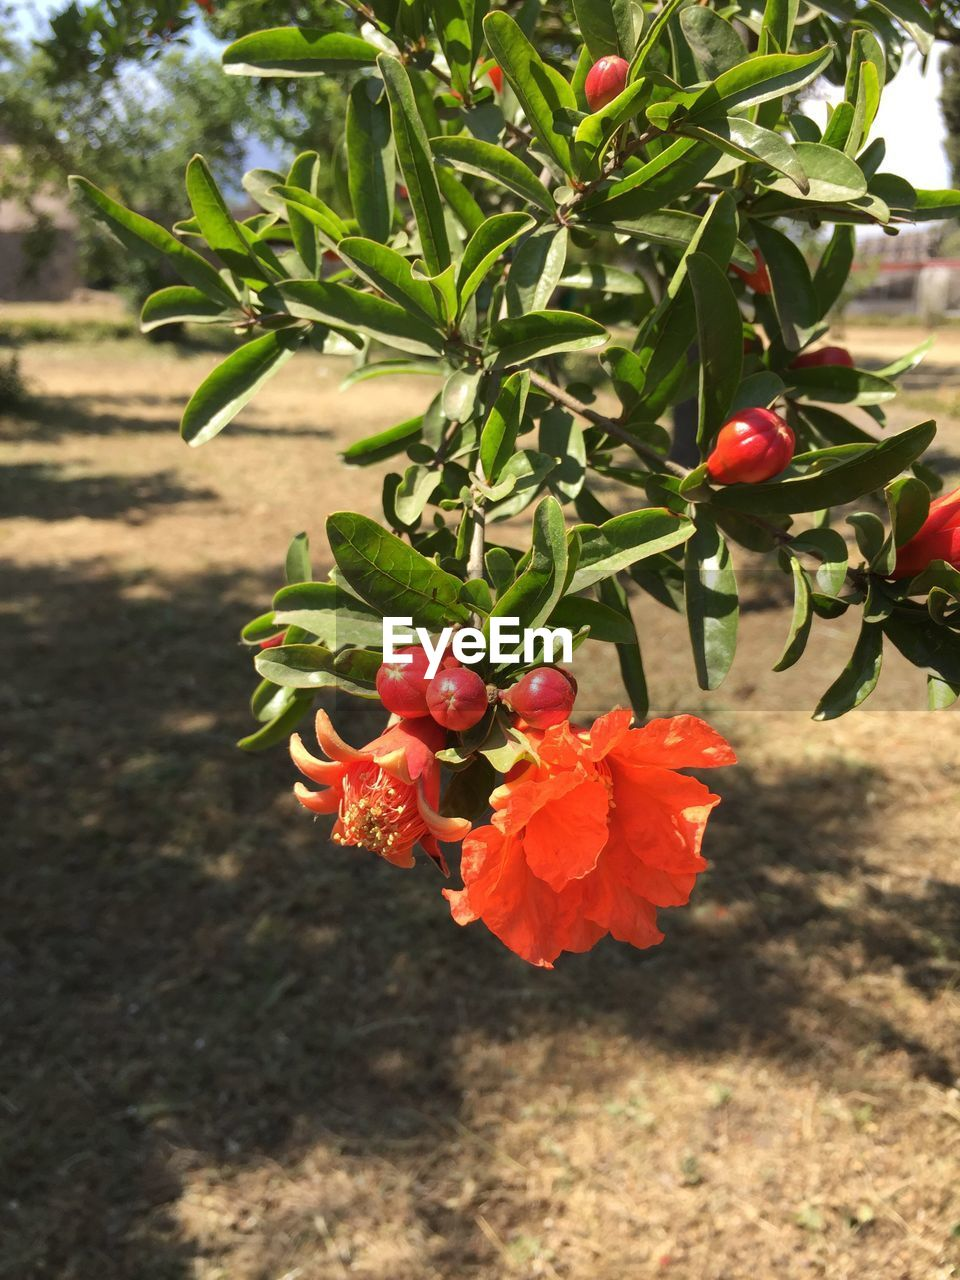 growth, nature, red, outdoors, freshness, beauty in nature, day, no people, plant, tree, focus on foreground, sunlight, fruit, close-up, food, flower